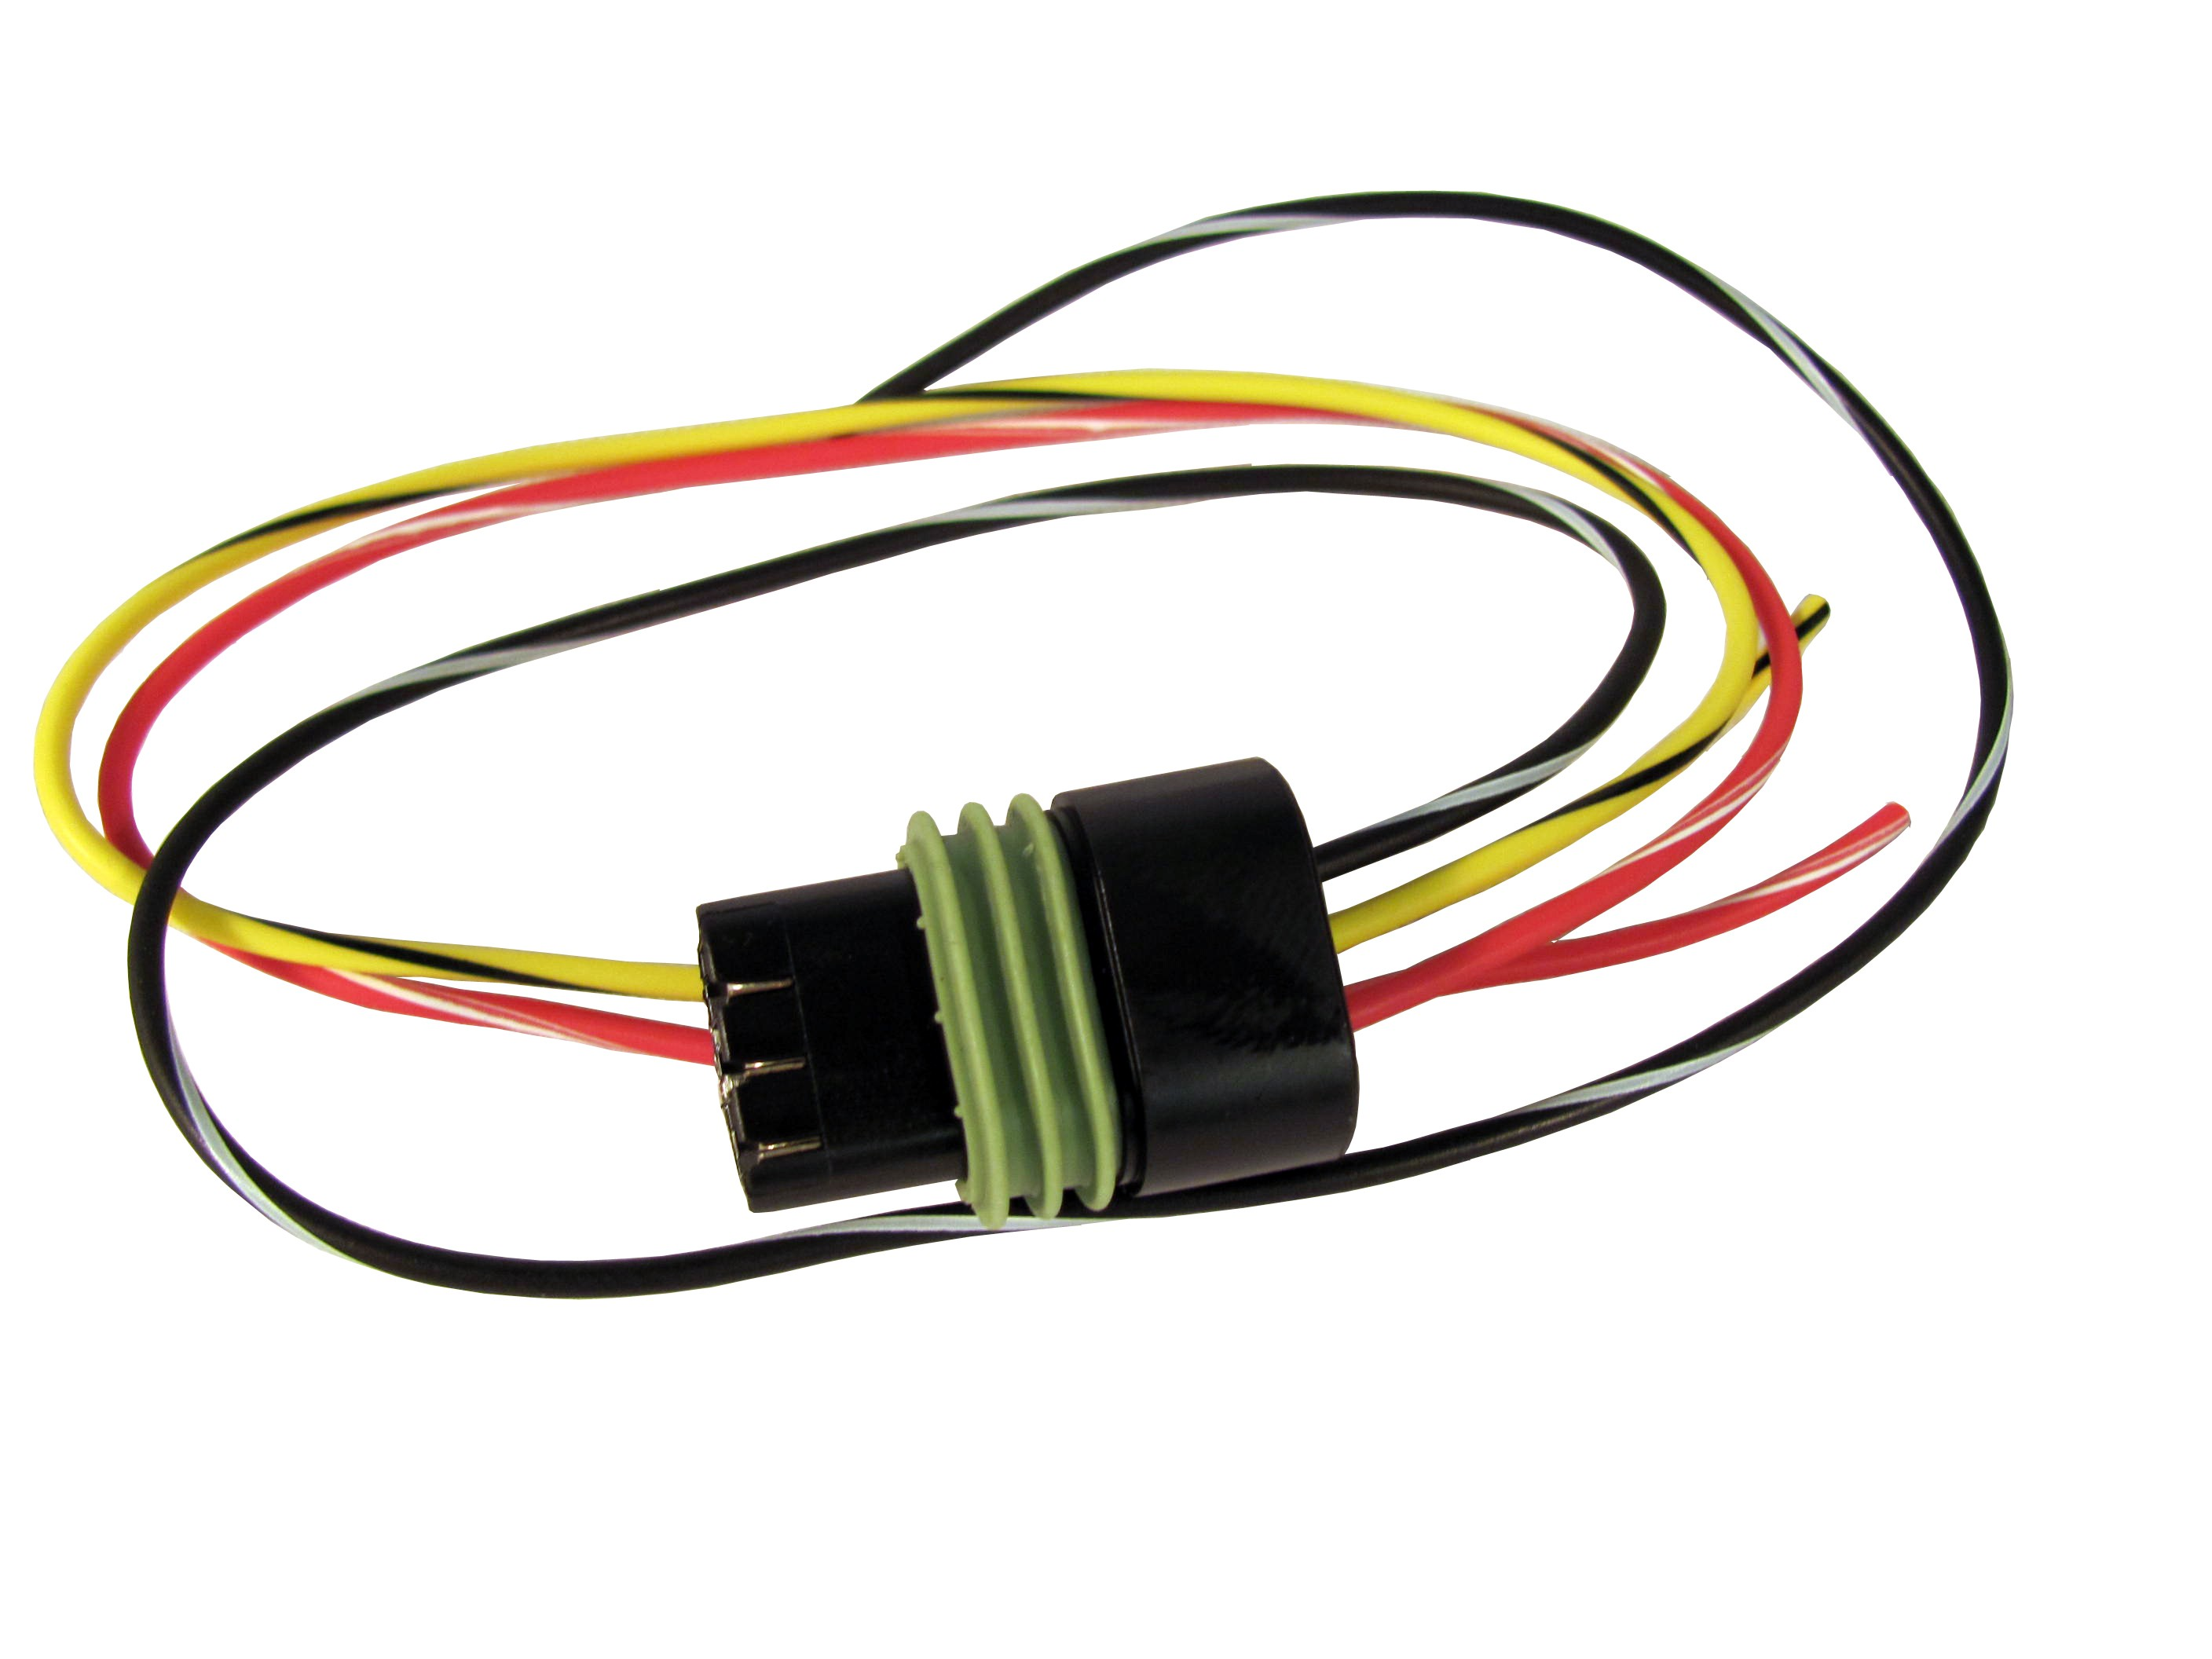 Wiring - 1989-1998 Dodge mins TPS Connector Pigtail